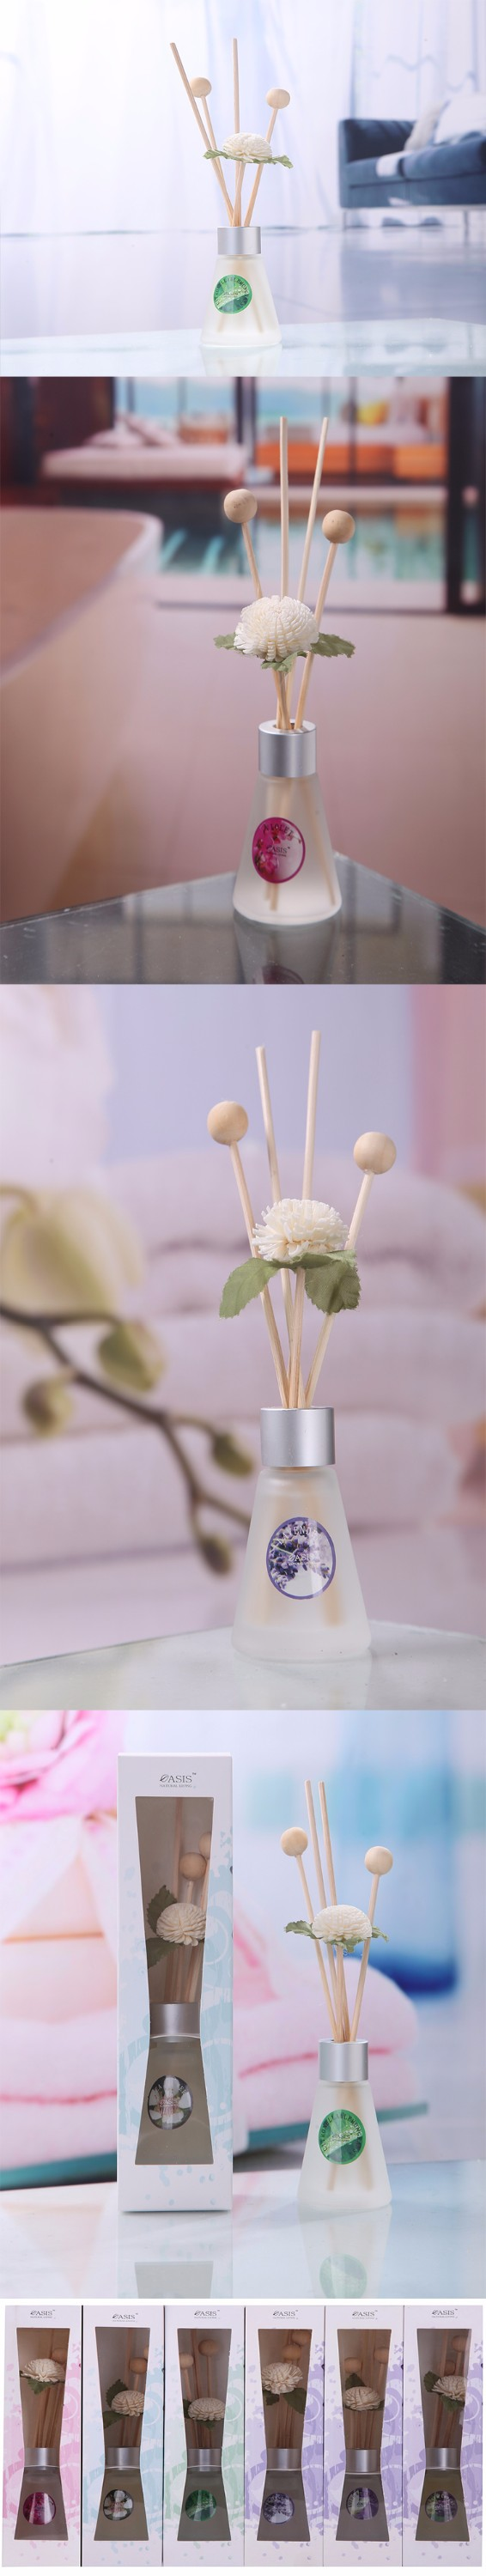 Banquet Decoration Wedding Favor and Gifts for Guest Reed Diffuser Packaging, Oaxiz-S12 Diffuser Stick Reed